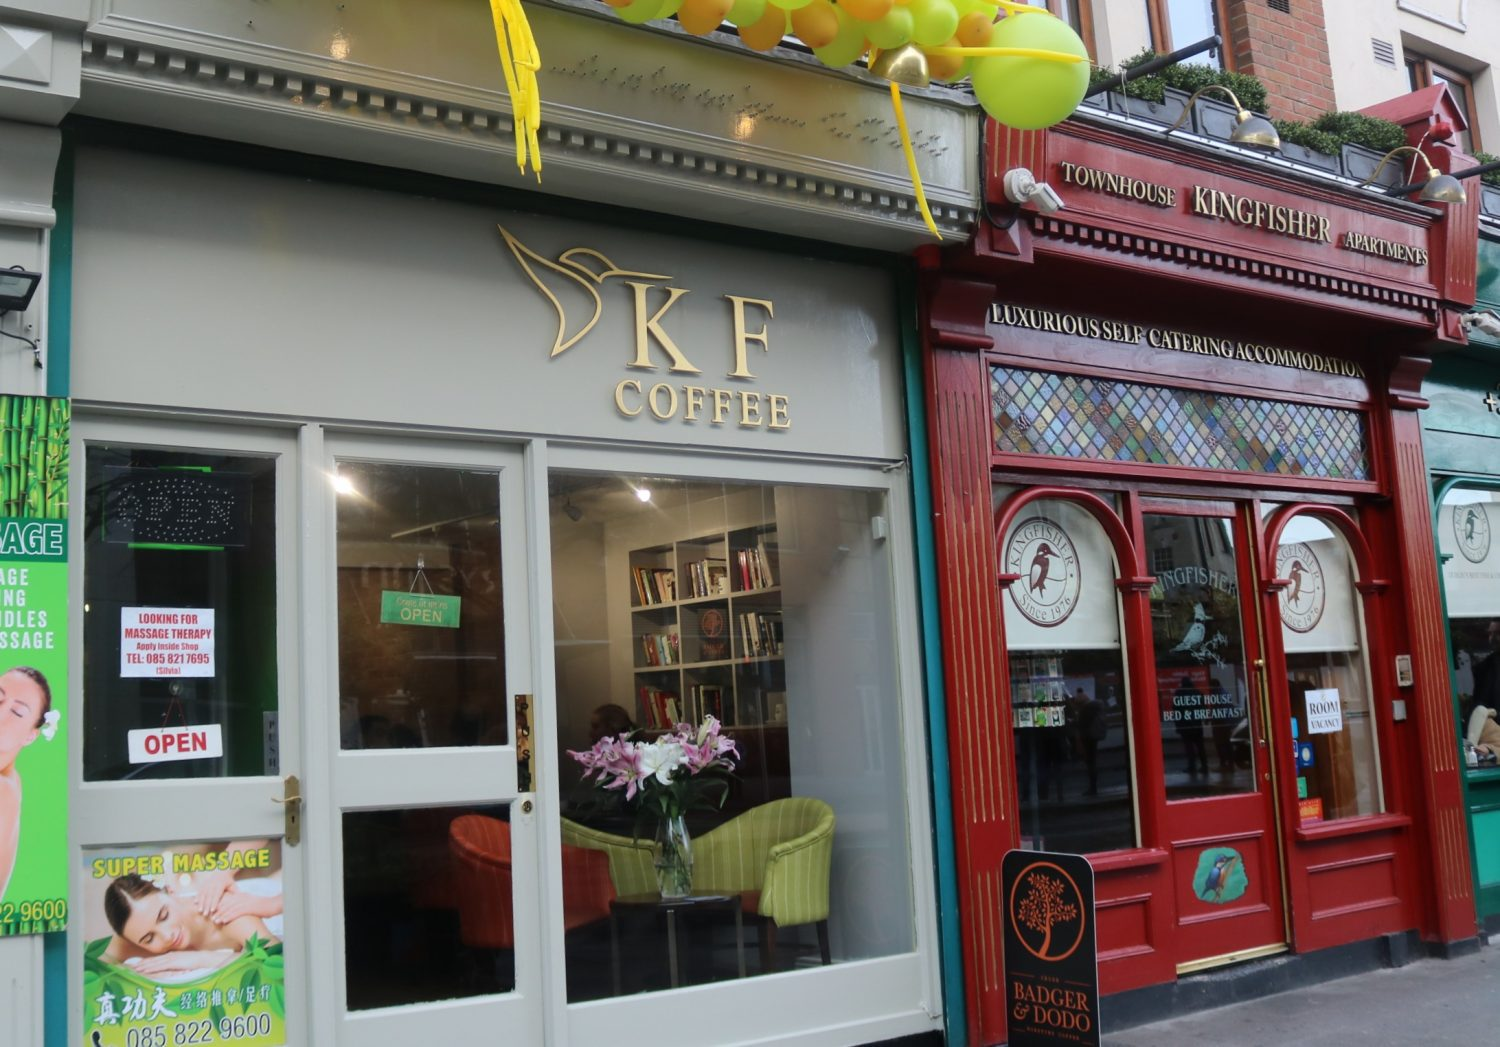 KF Coffee on Parnell Street